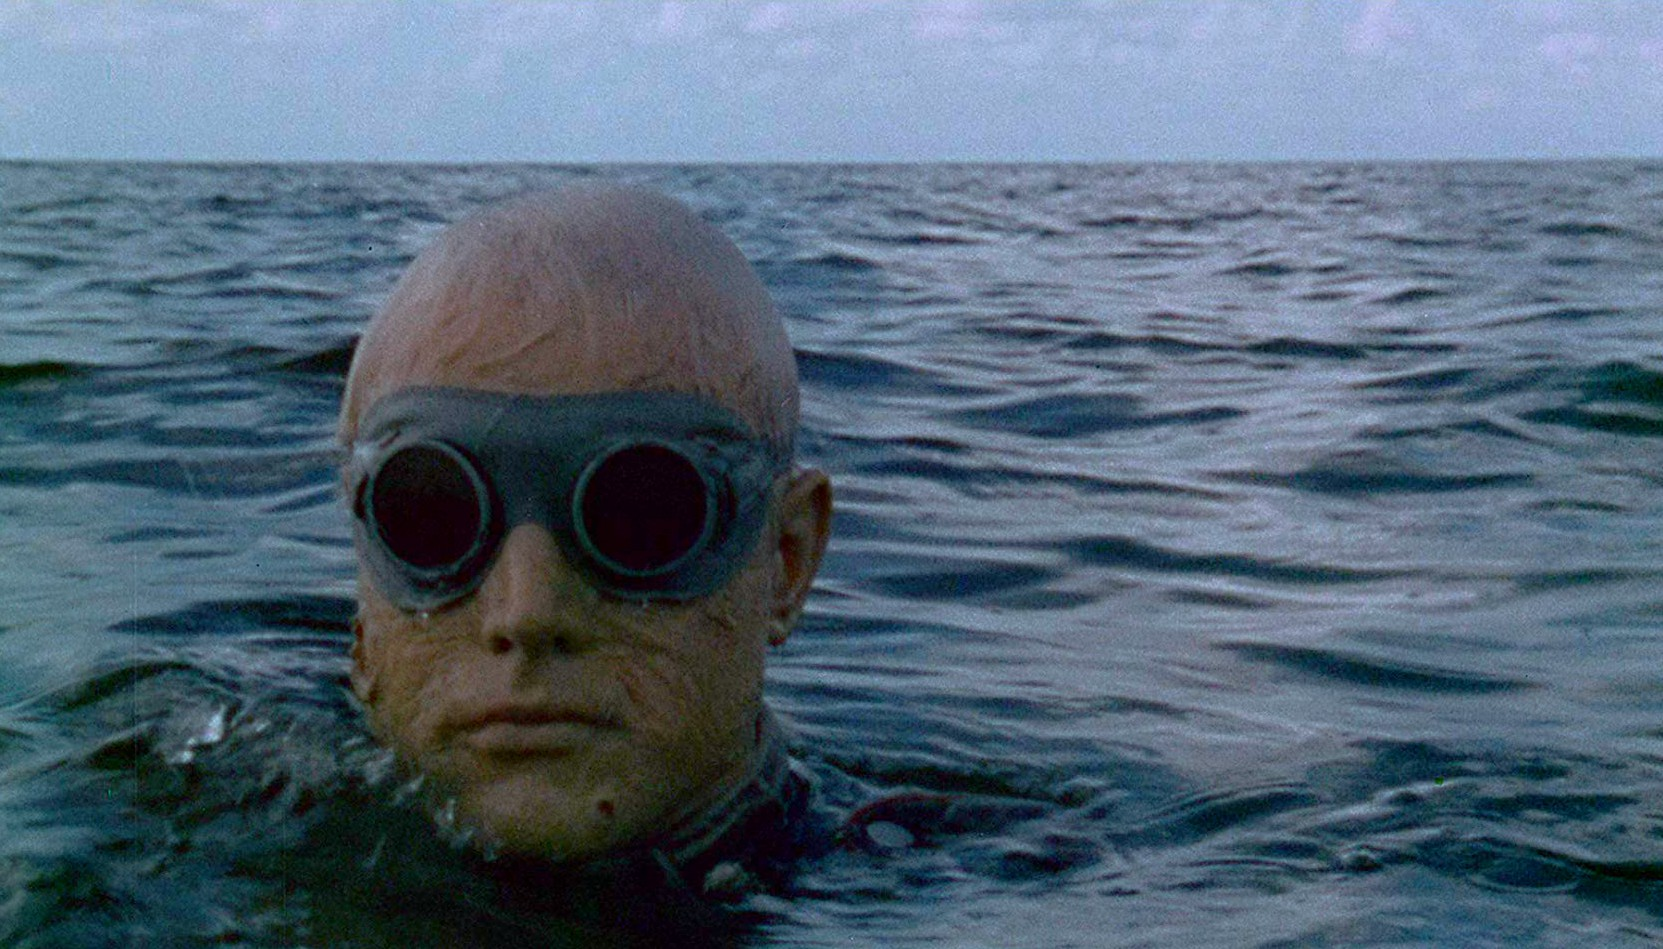 A Nazi zombie rises from the surf in Shock Waves (1977)